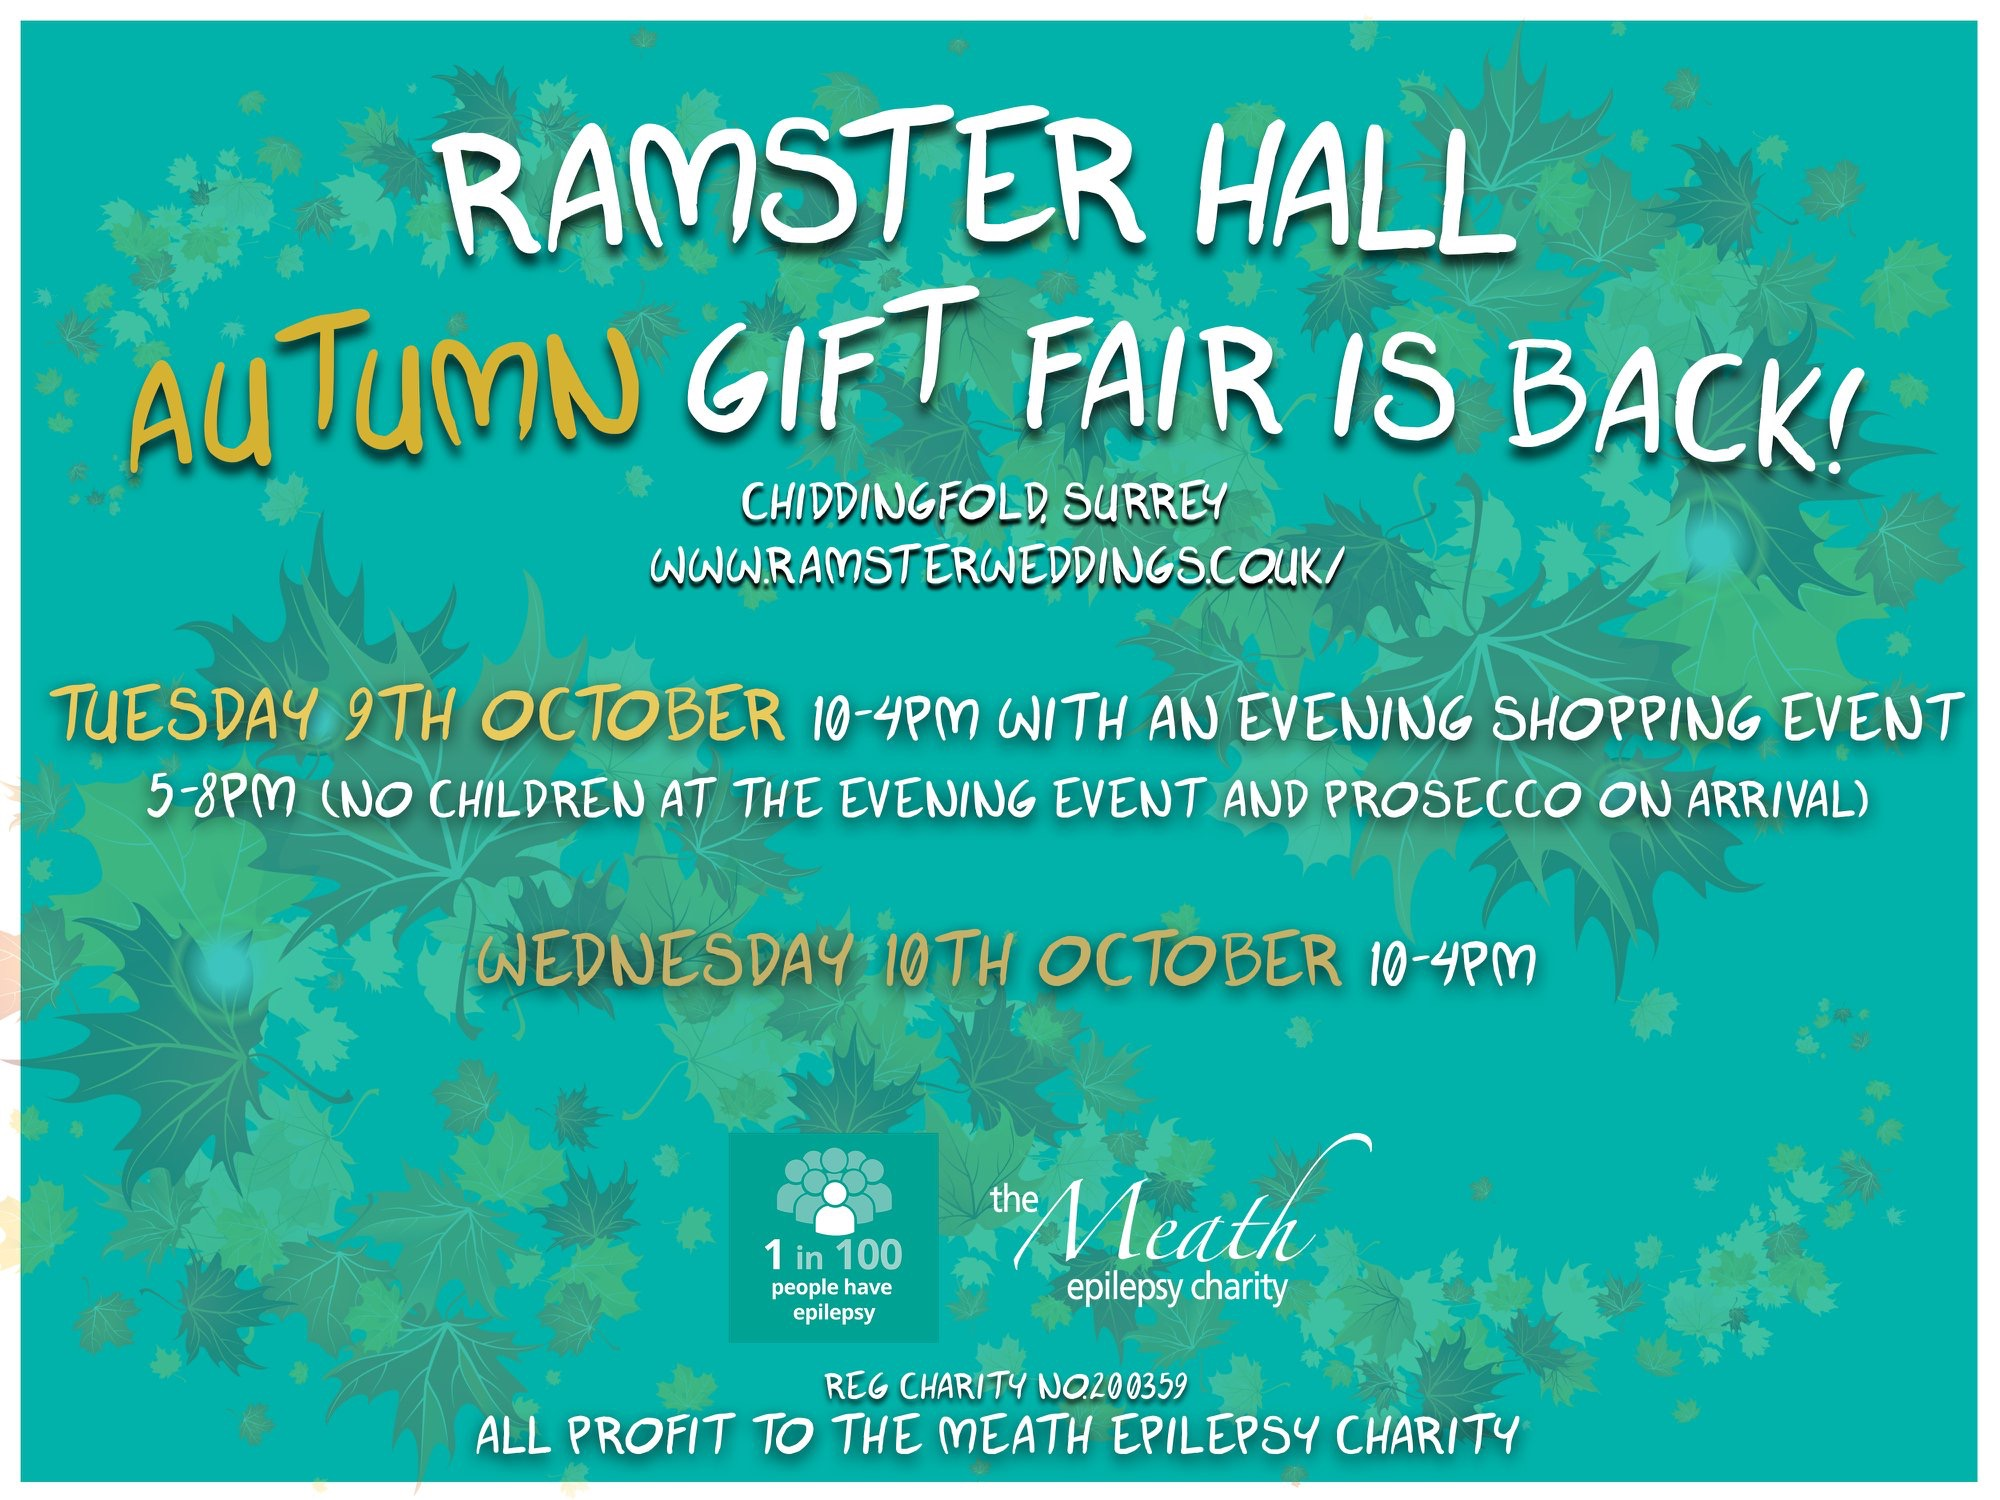 0045179ab492 One of our very popular  fairs is back-the Ramster Hall Autumn Gift Fair at   Chiddingfold  Surrey. It is on 9-10 Oct. To apply now go to ...